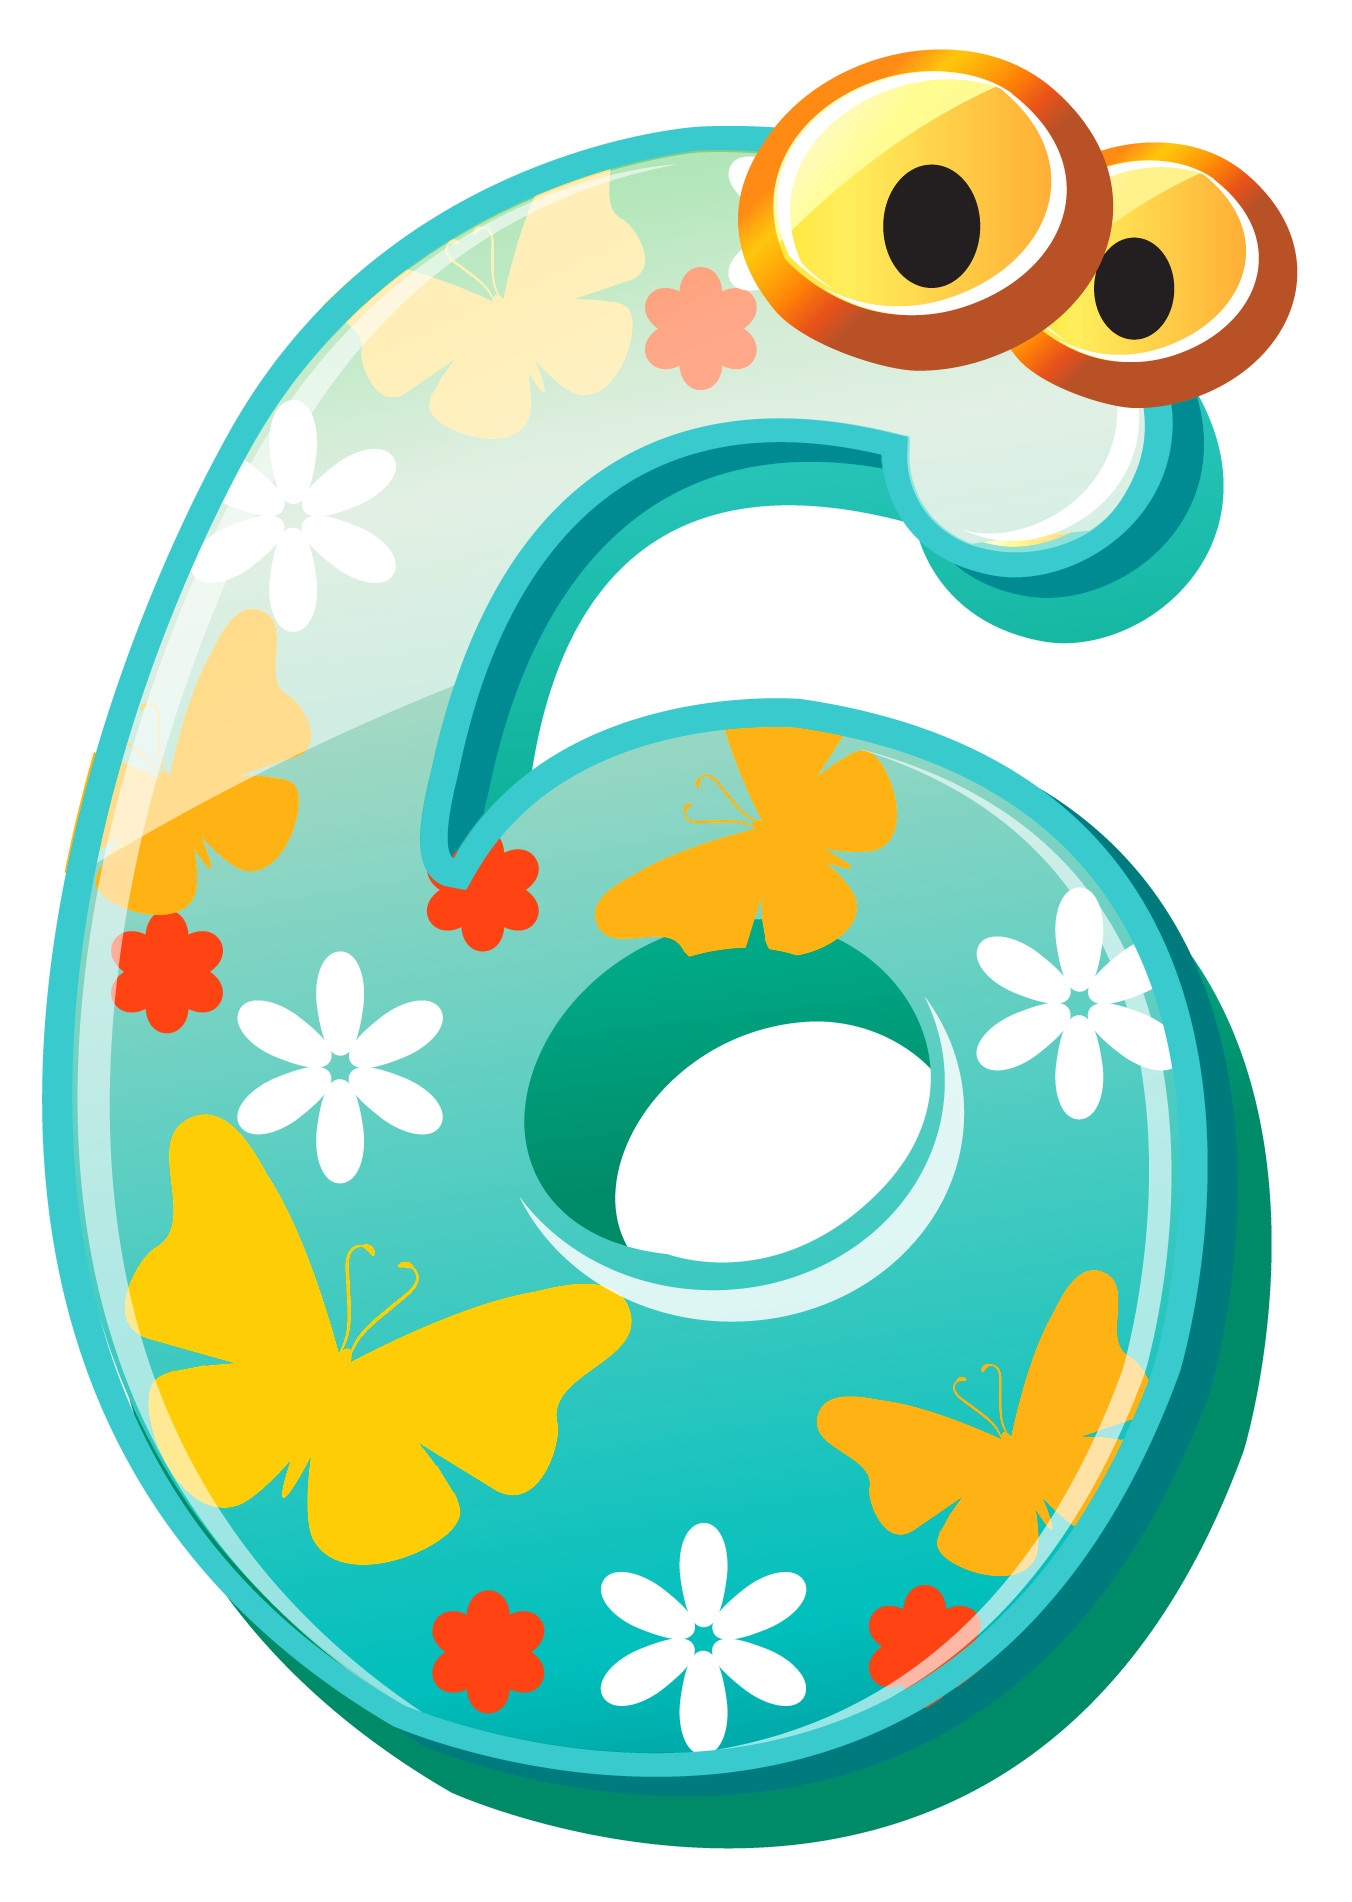 clipart birthday numbers - photo #25